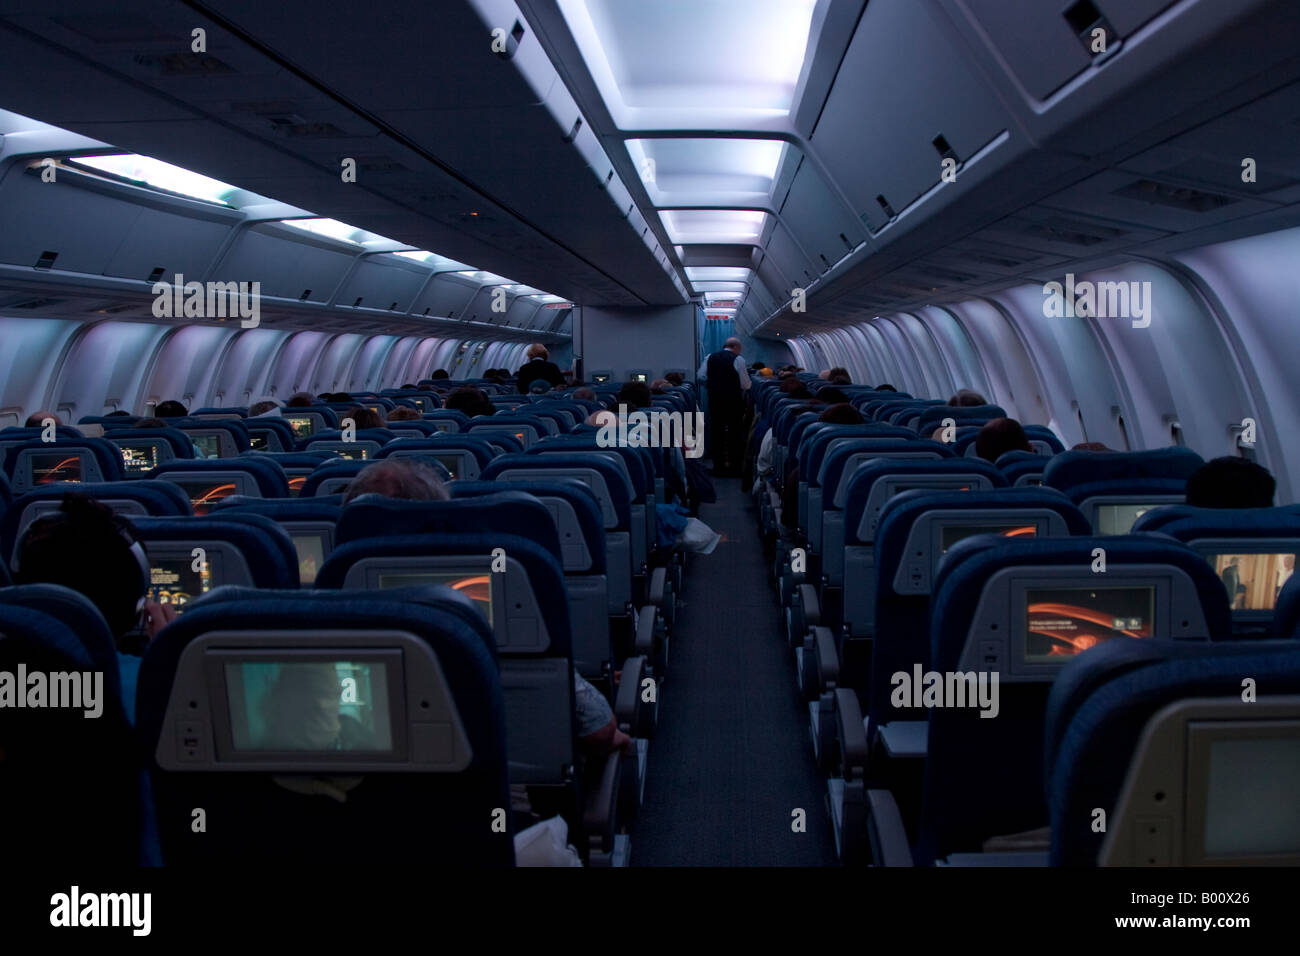 Air Canada Boeing 767 300er Interior On Route From London To Toronto Stock Photo 17230814 Alamy